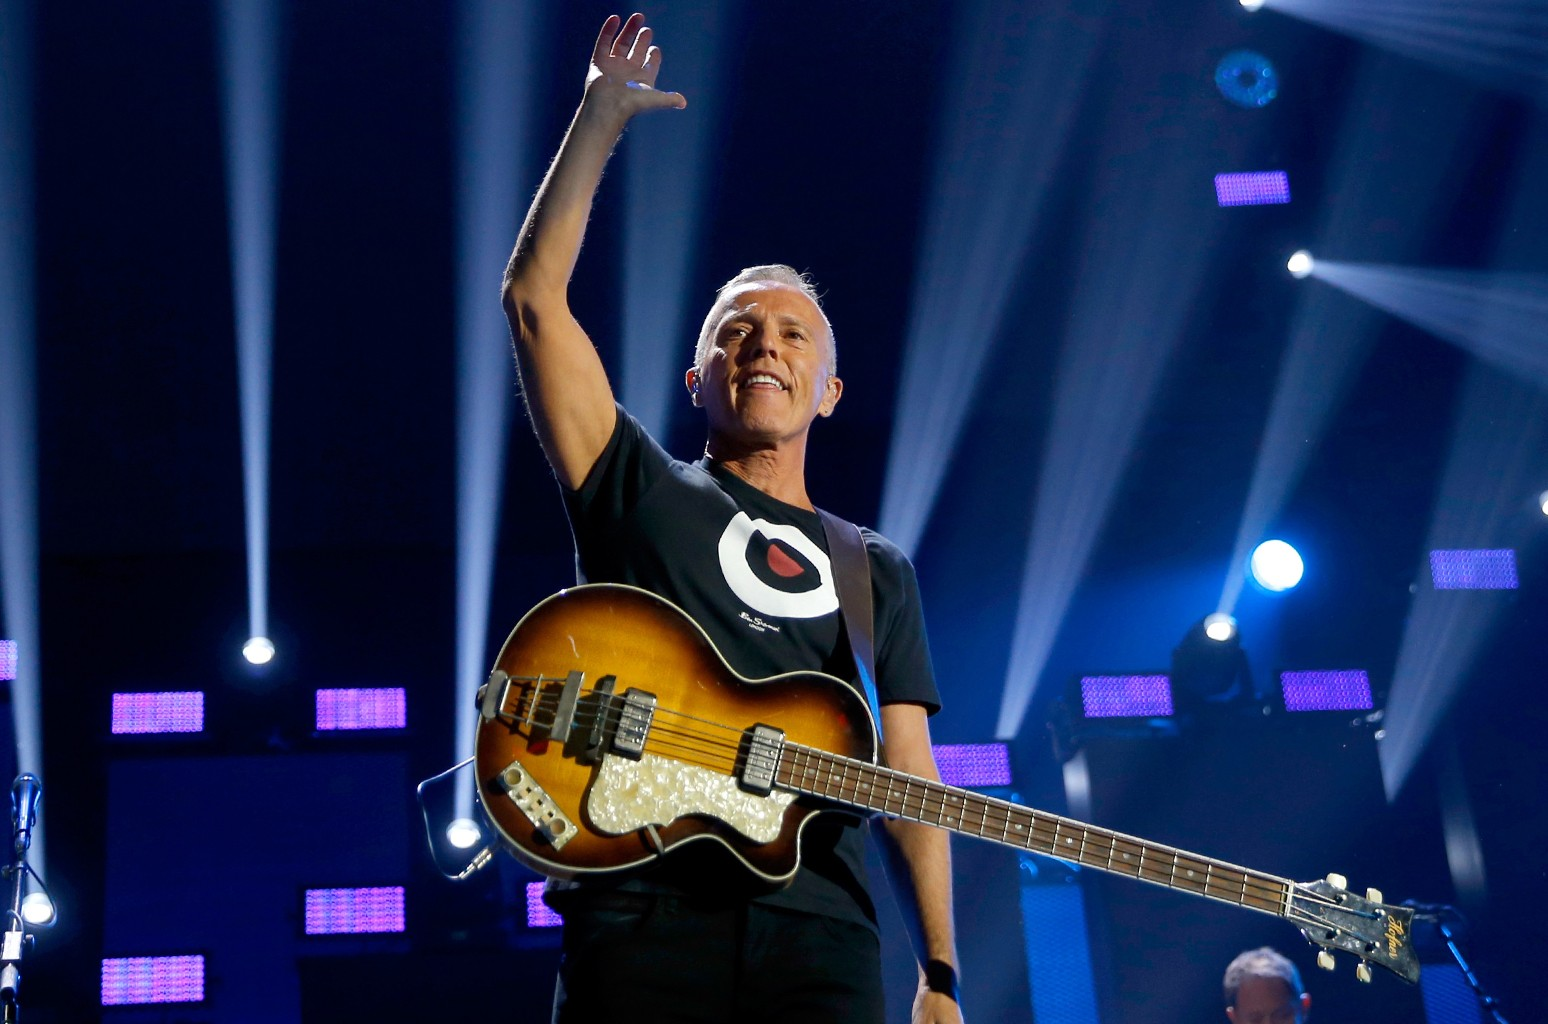 Curt Smith of Tears for Fears